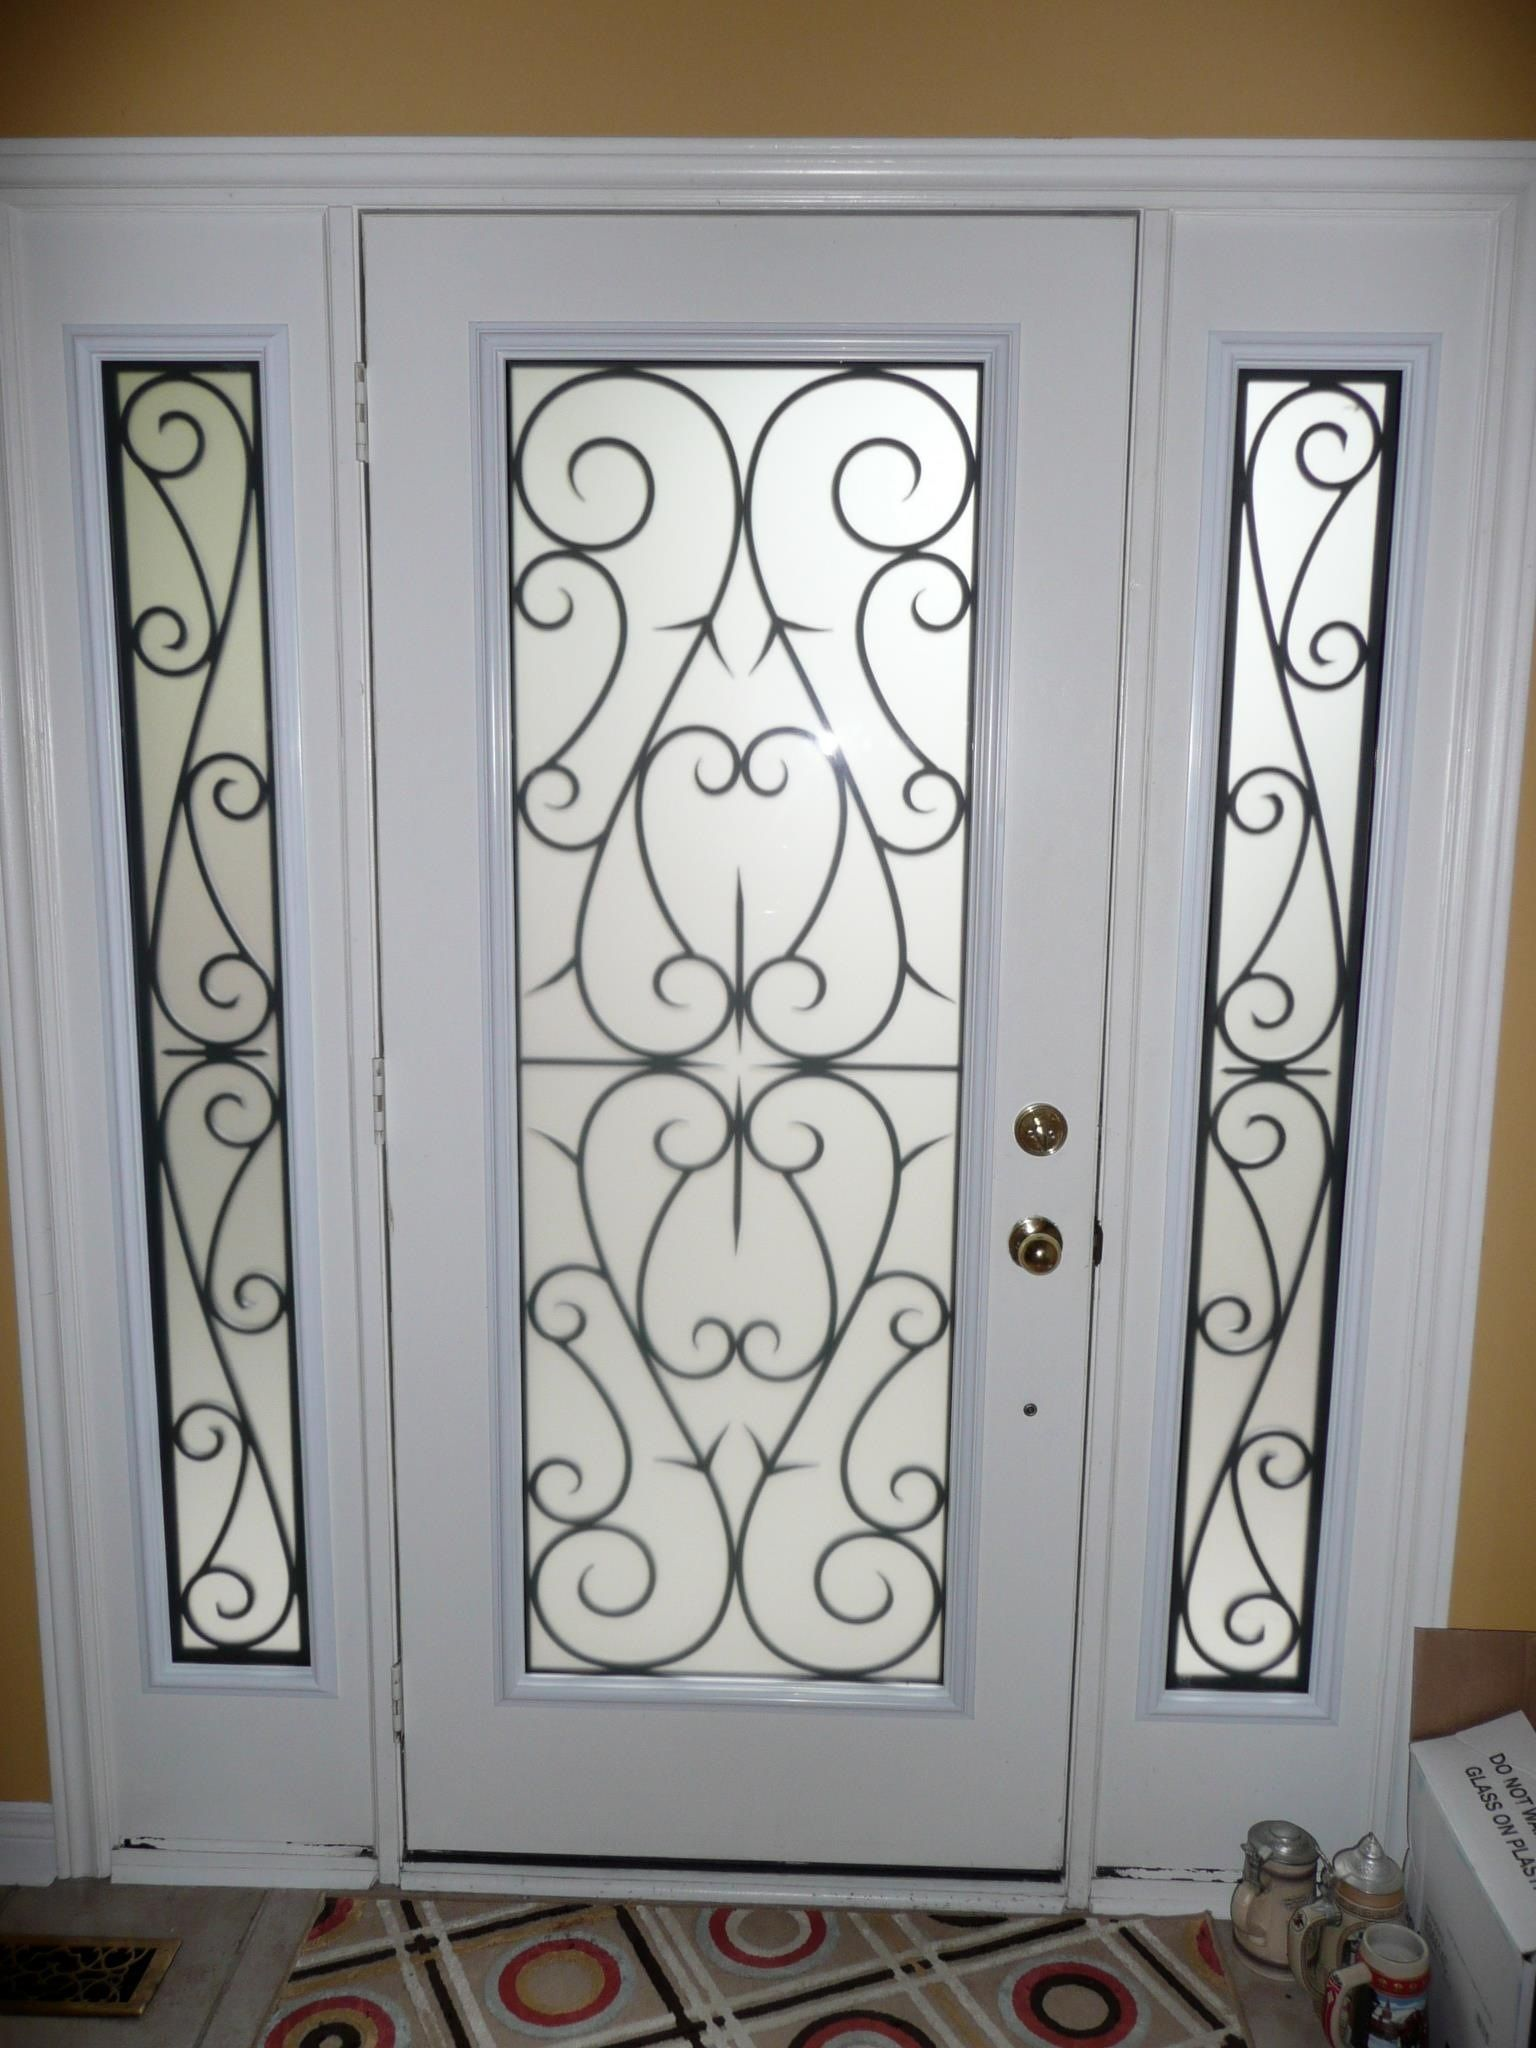 Front doors with glass and iron - Decorative Glass Inserts For Doors Wrought Iron Decorative Stained Glass Door Inserts